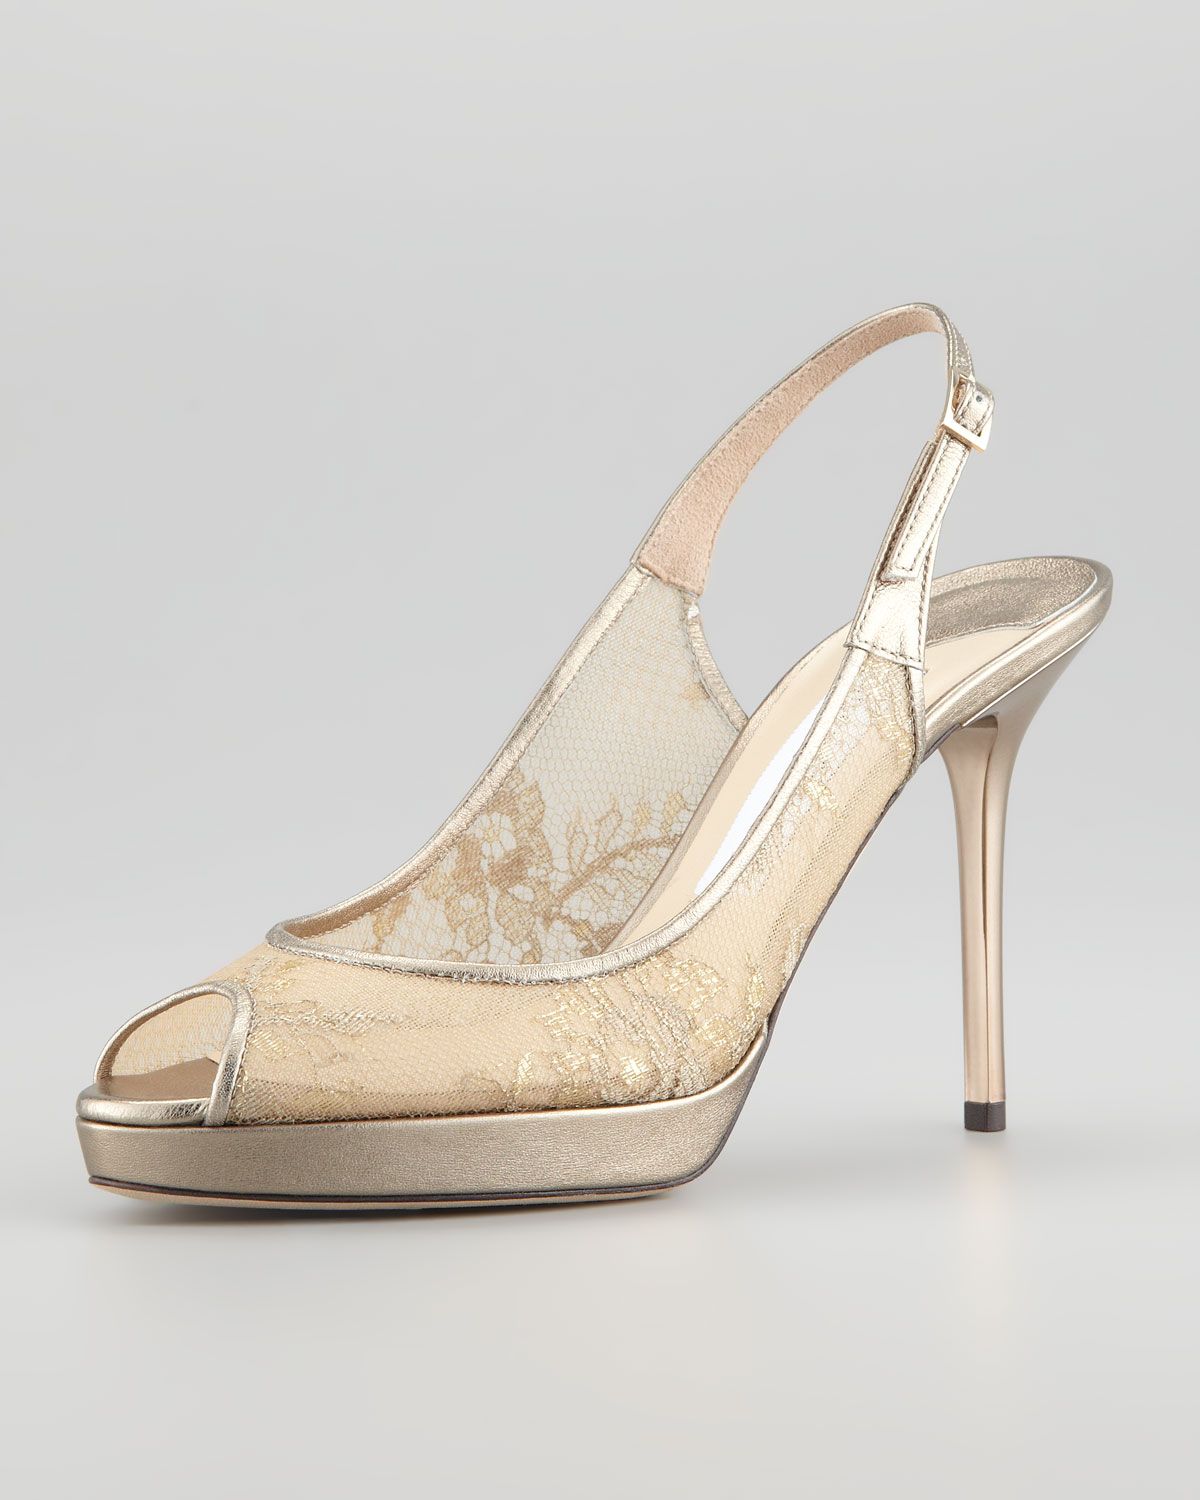 Jimmy Choo Nova Metallic Slingback Pumps free shipping official site Manchester ebay for sale low price fee shipping cheap price aS5fH